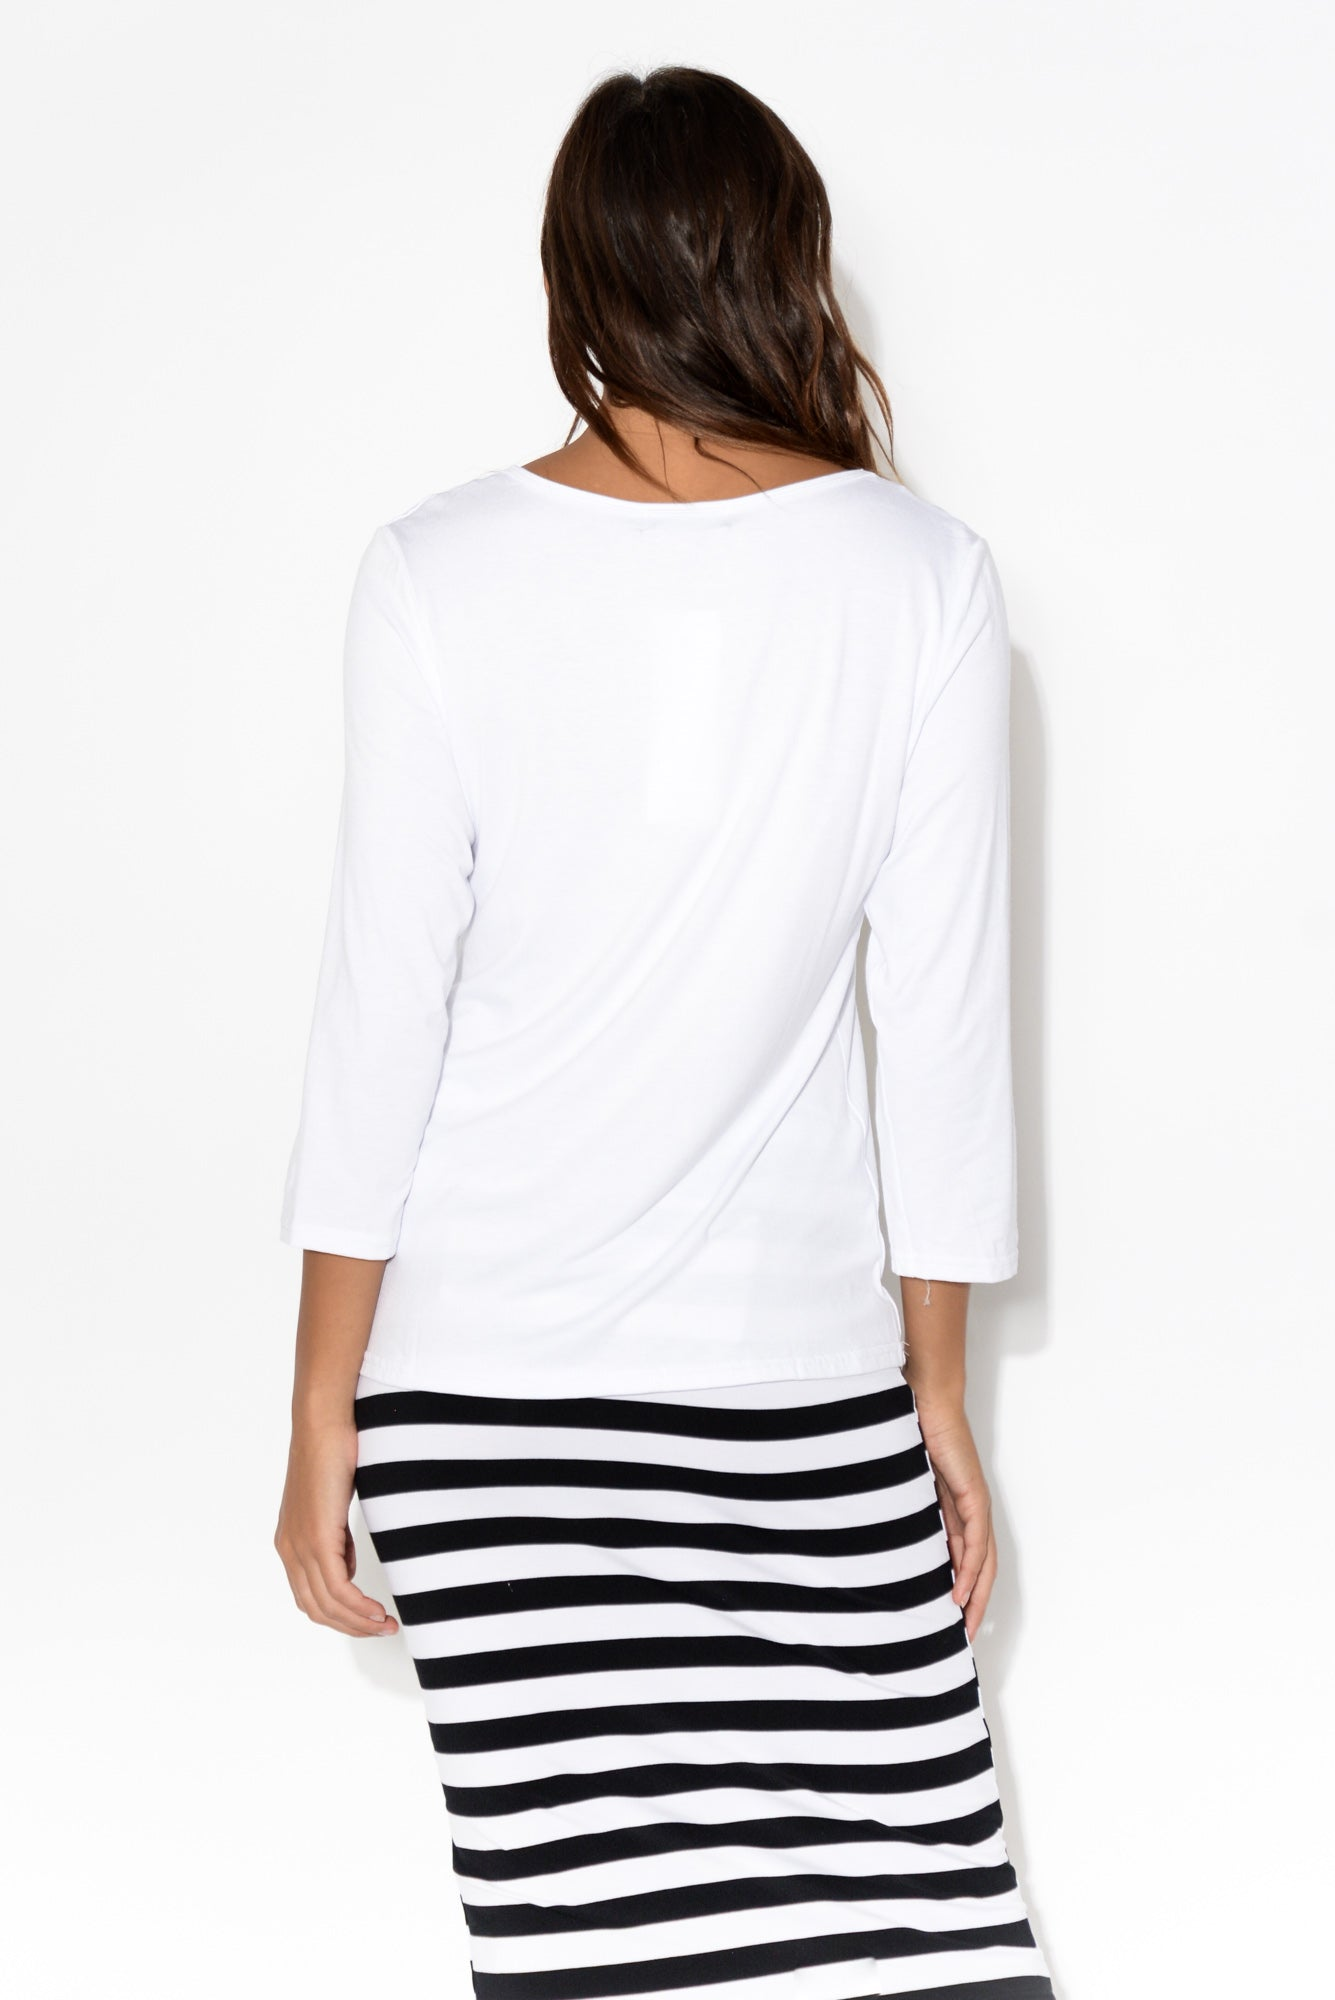 Joanna White 3/4 Sleeve Top